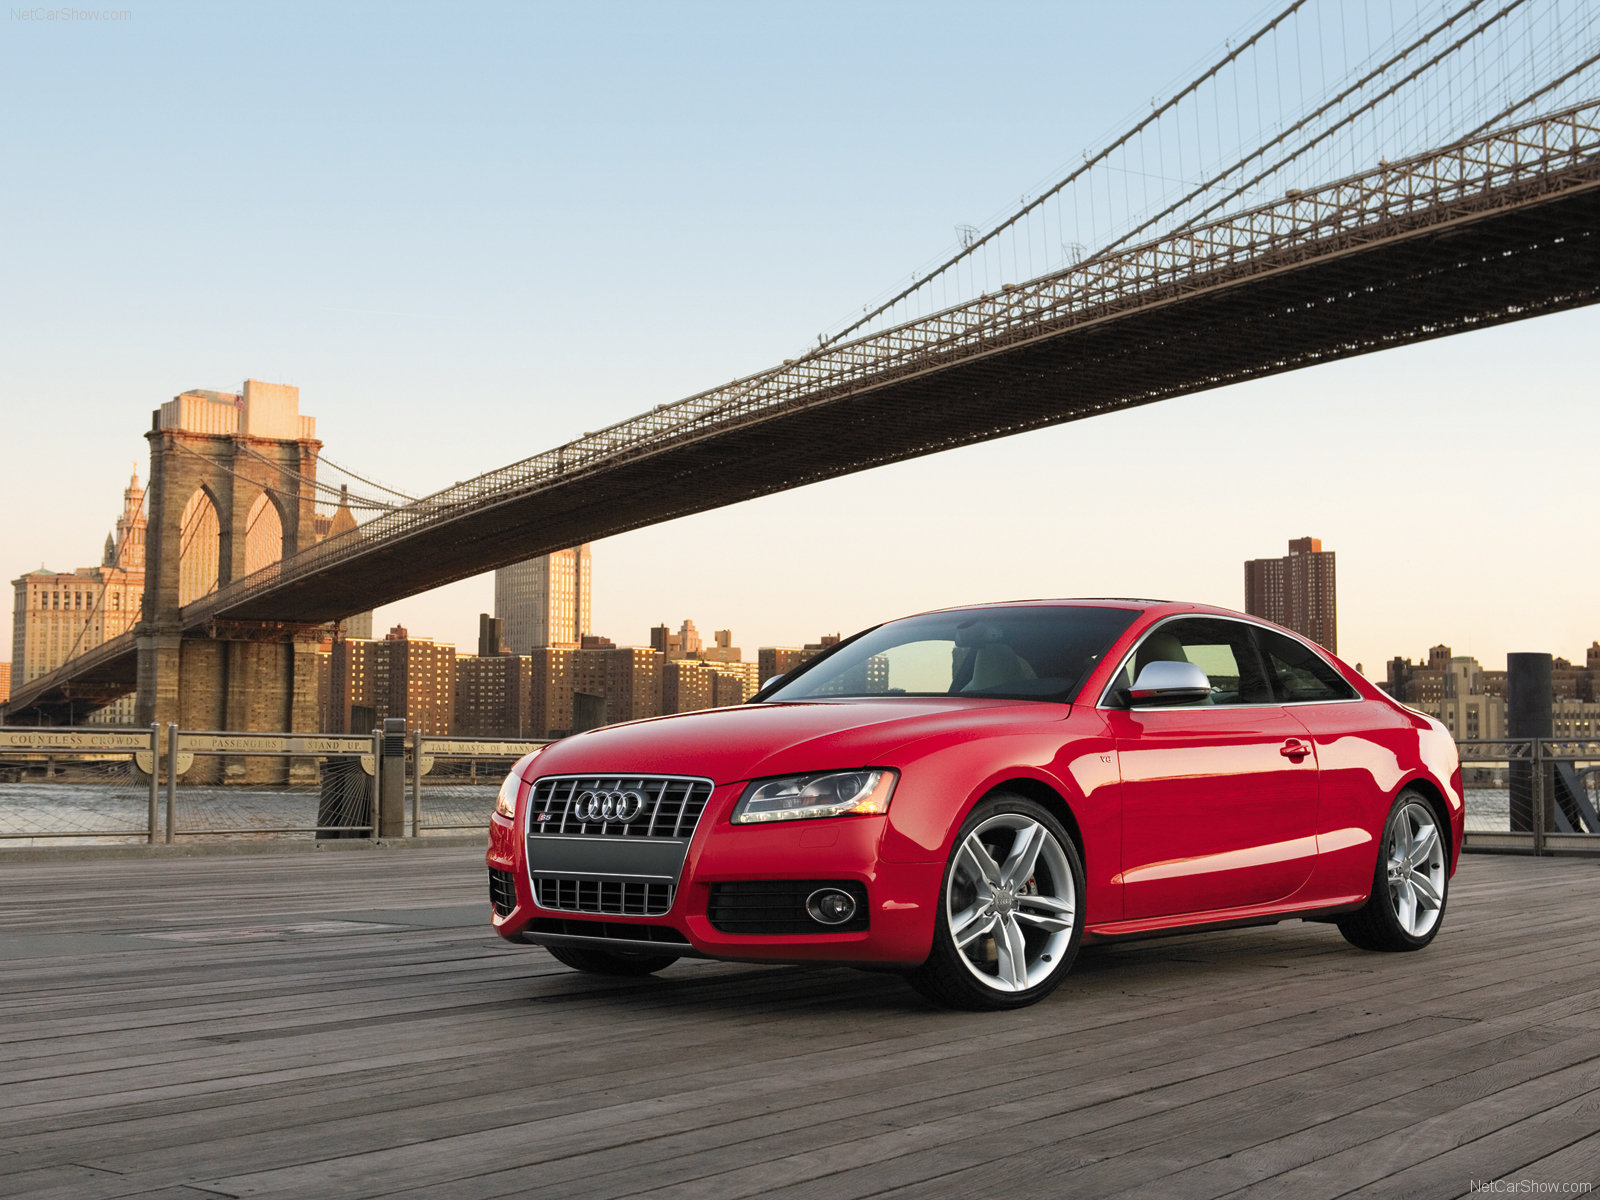 Red Audi Car Wallpapers HD